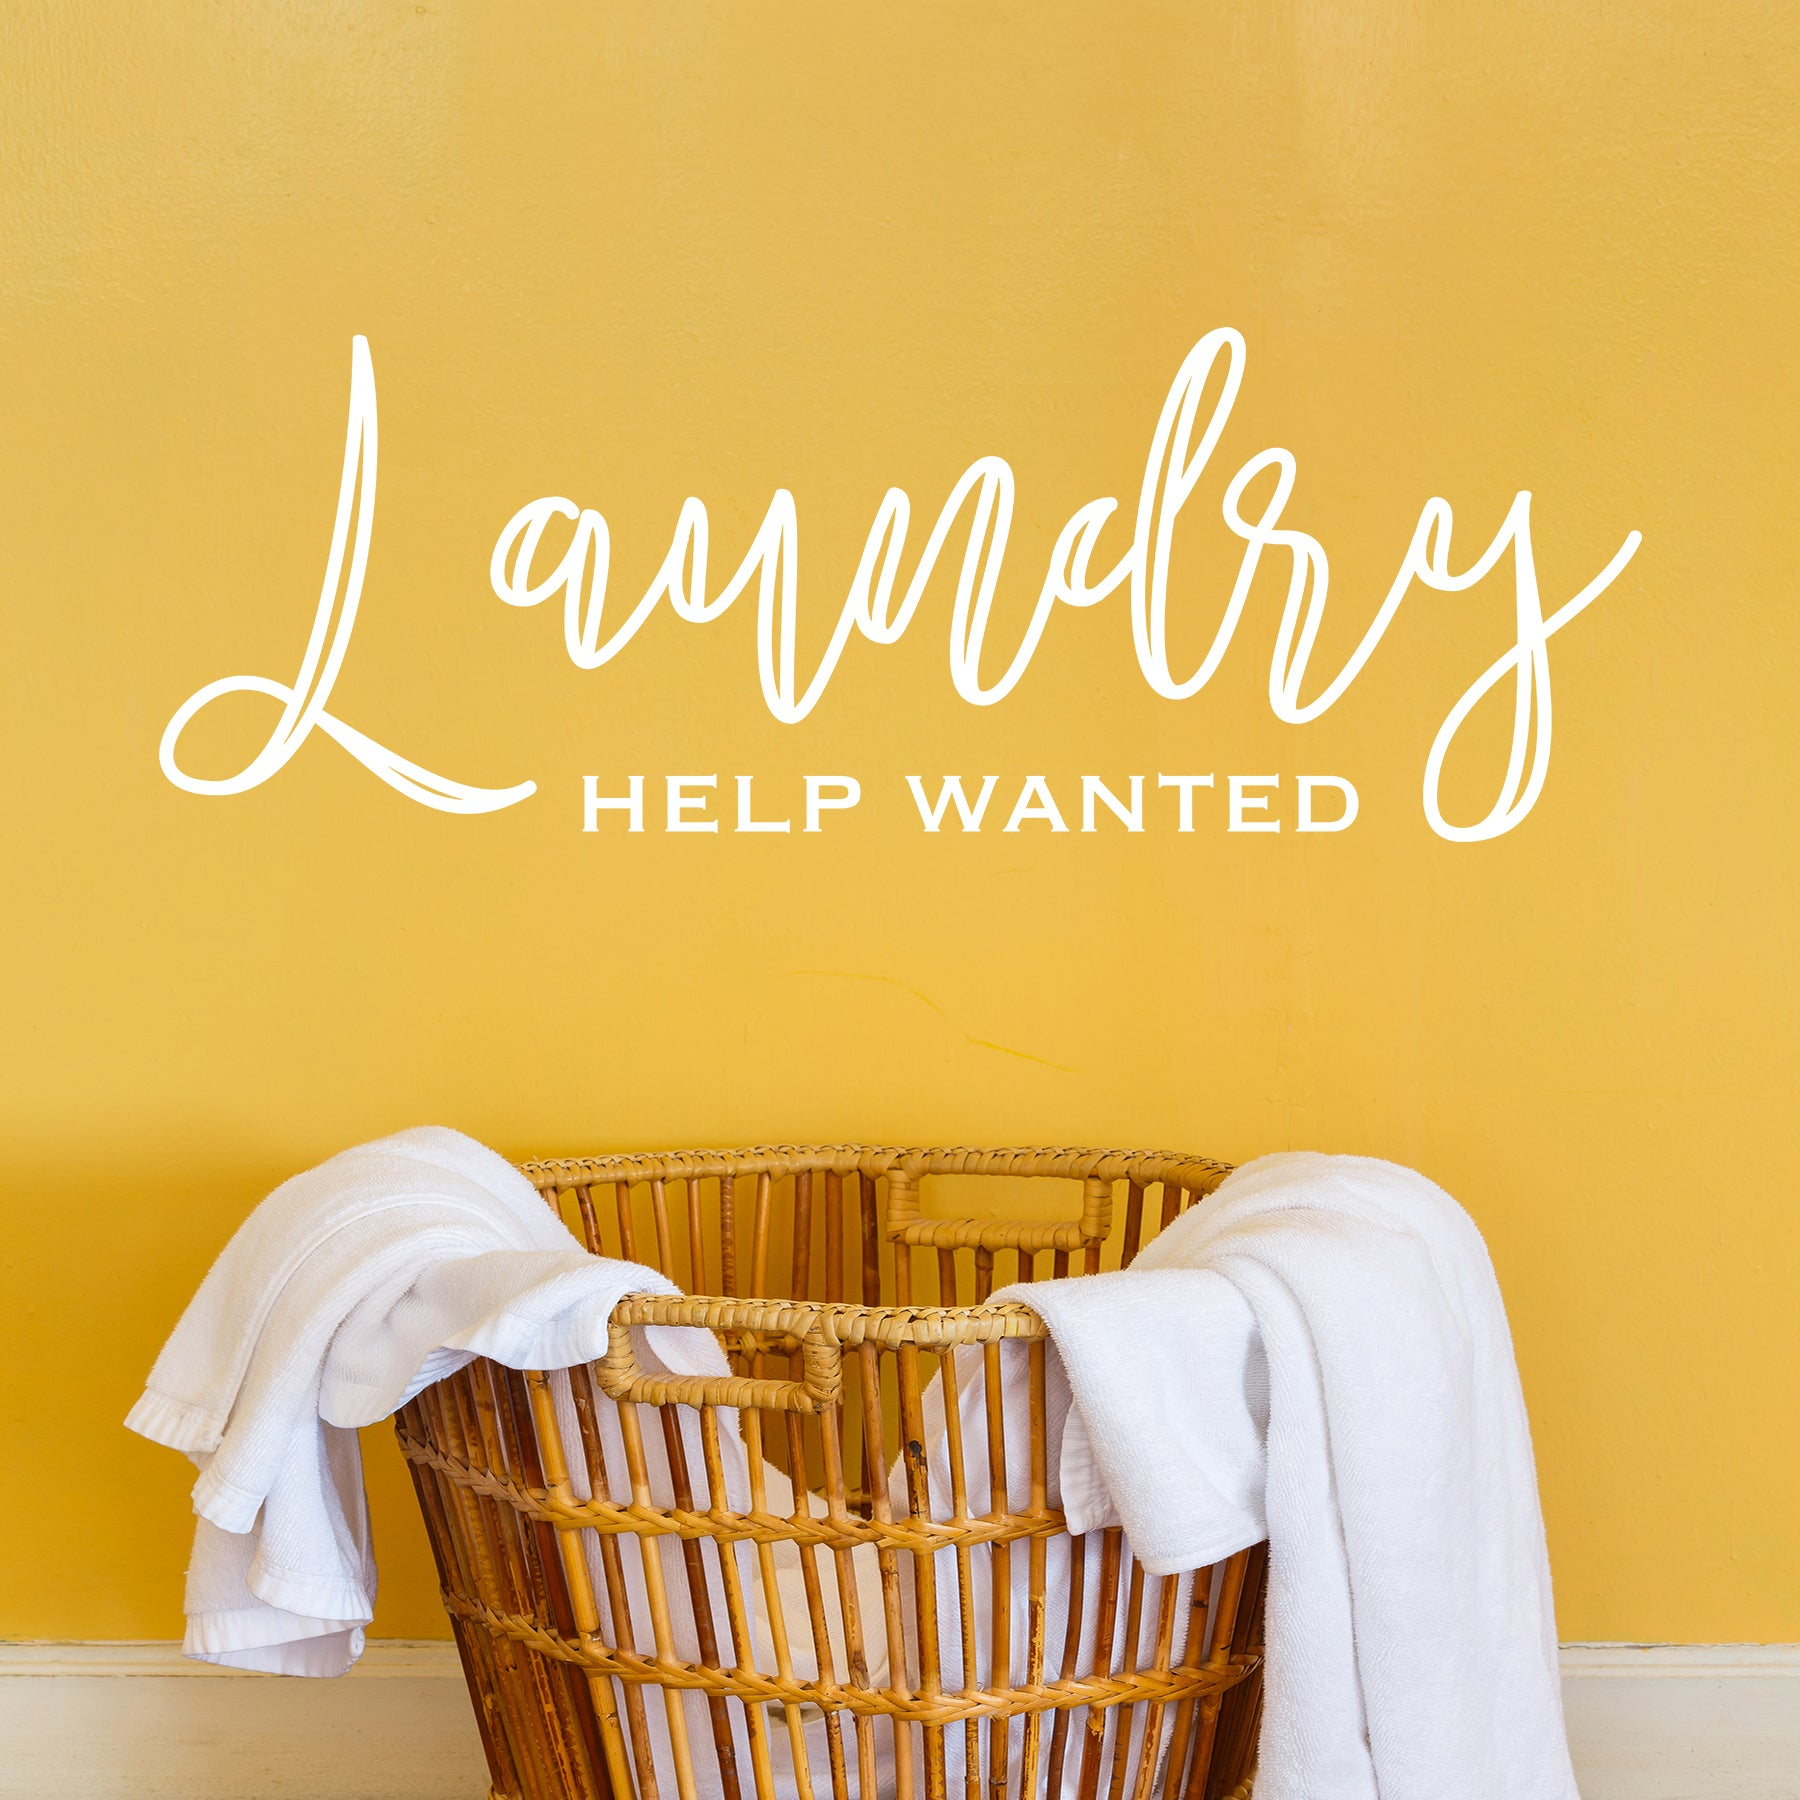 Help Wanted Laundry Room Decal – Dee-cal Frenzy Wall Decor